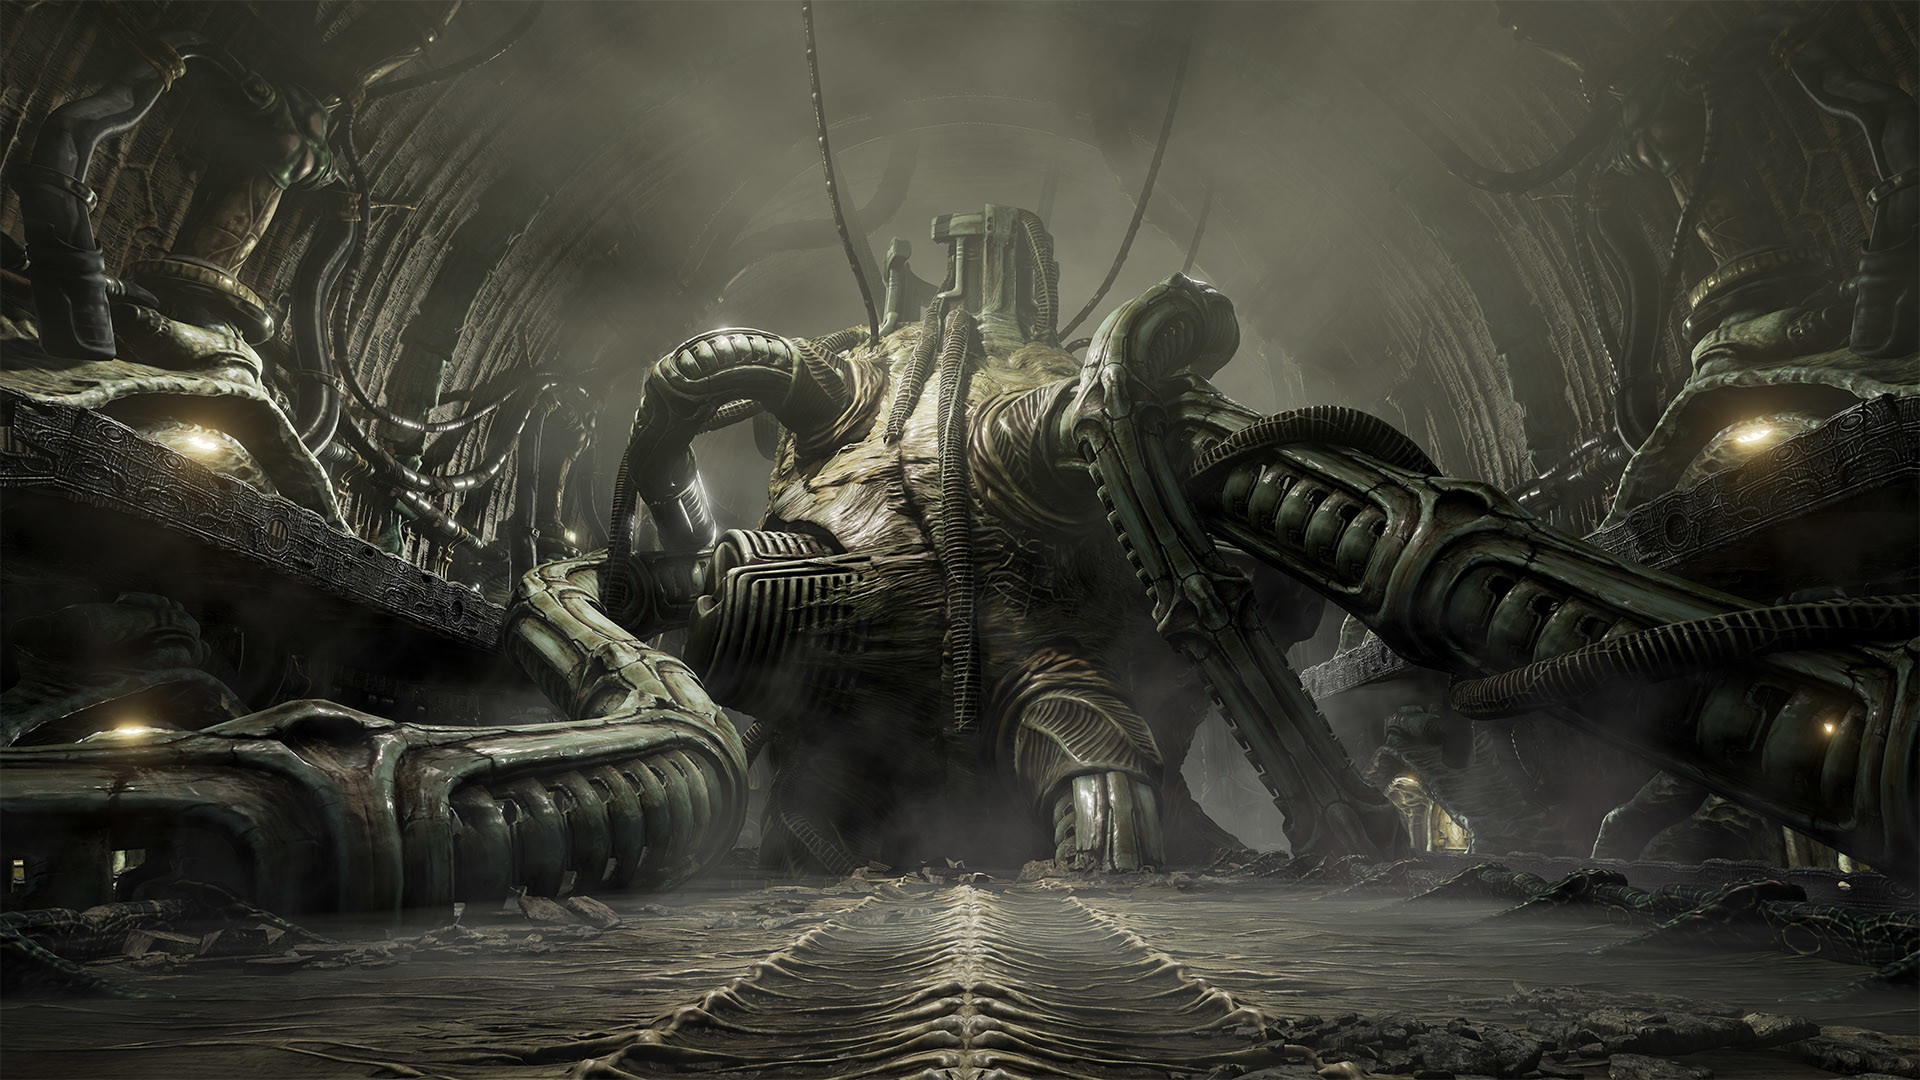 H.R. Giger inspired horror game – Scorn comes to Steam Greenlight